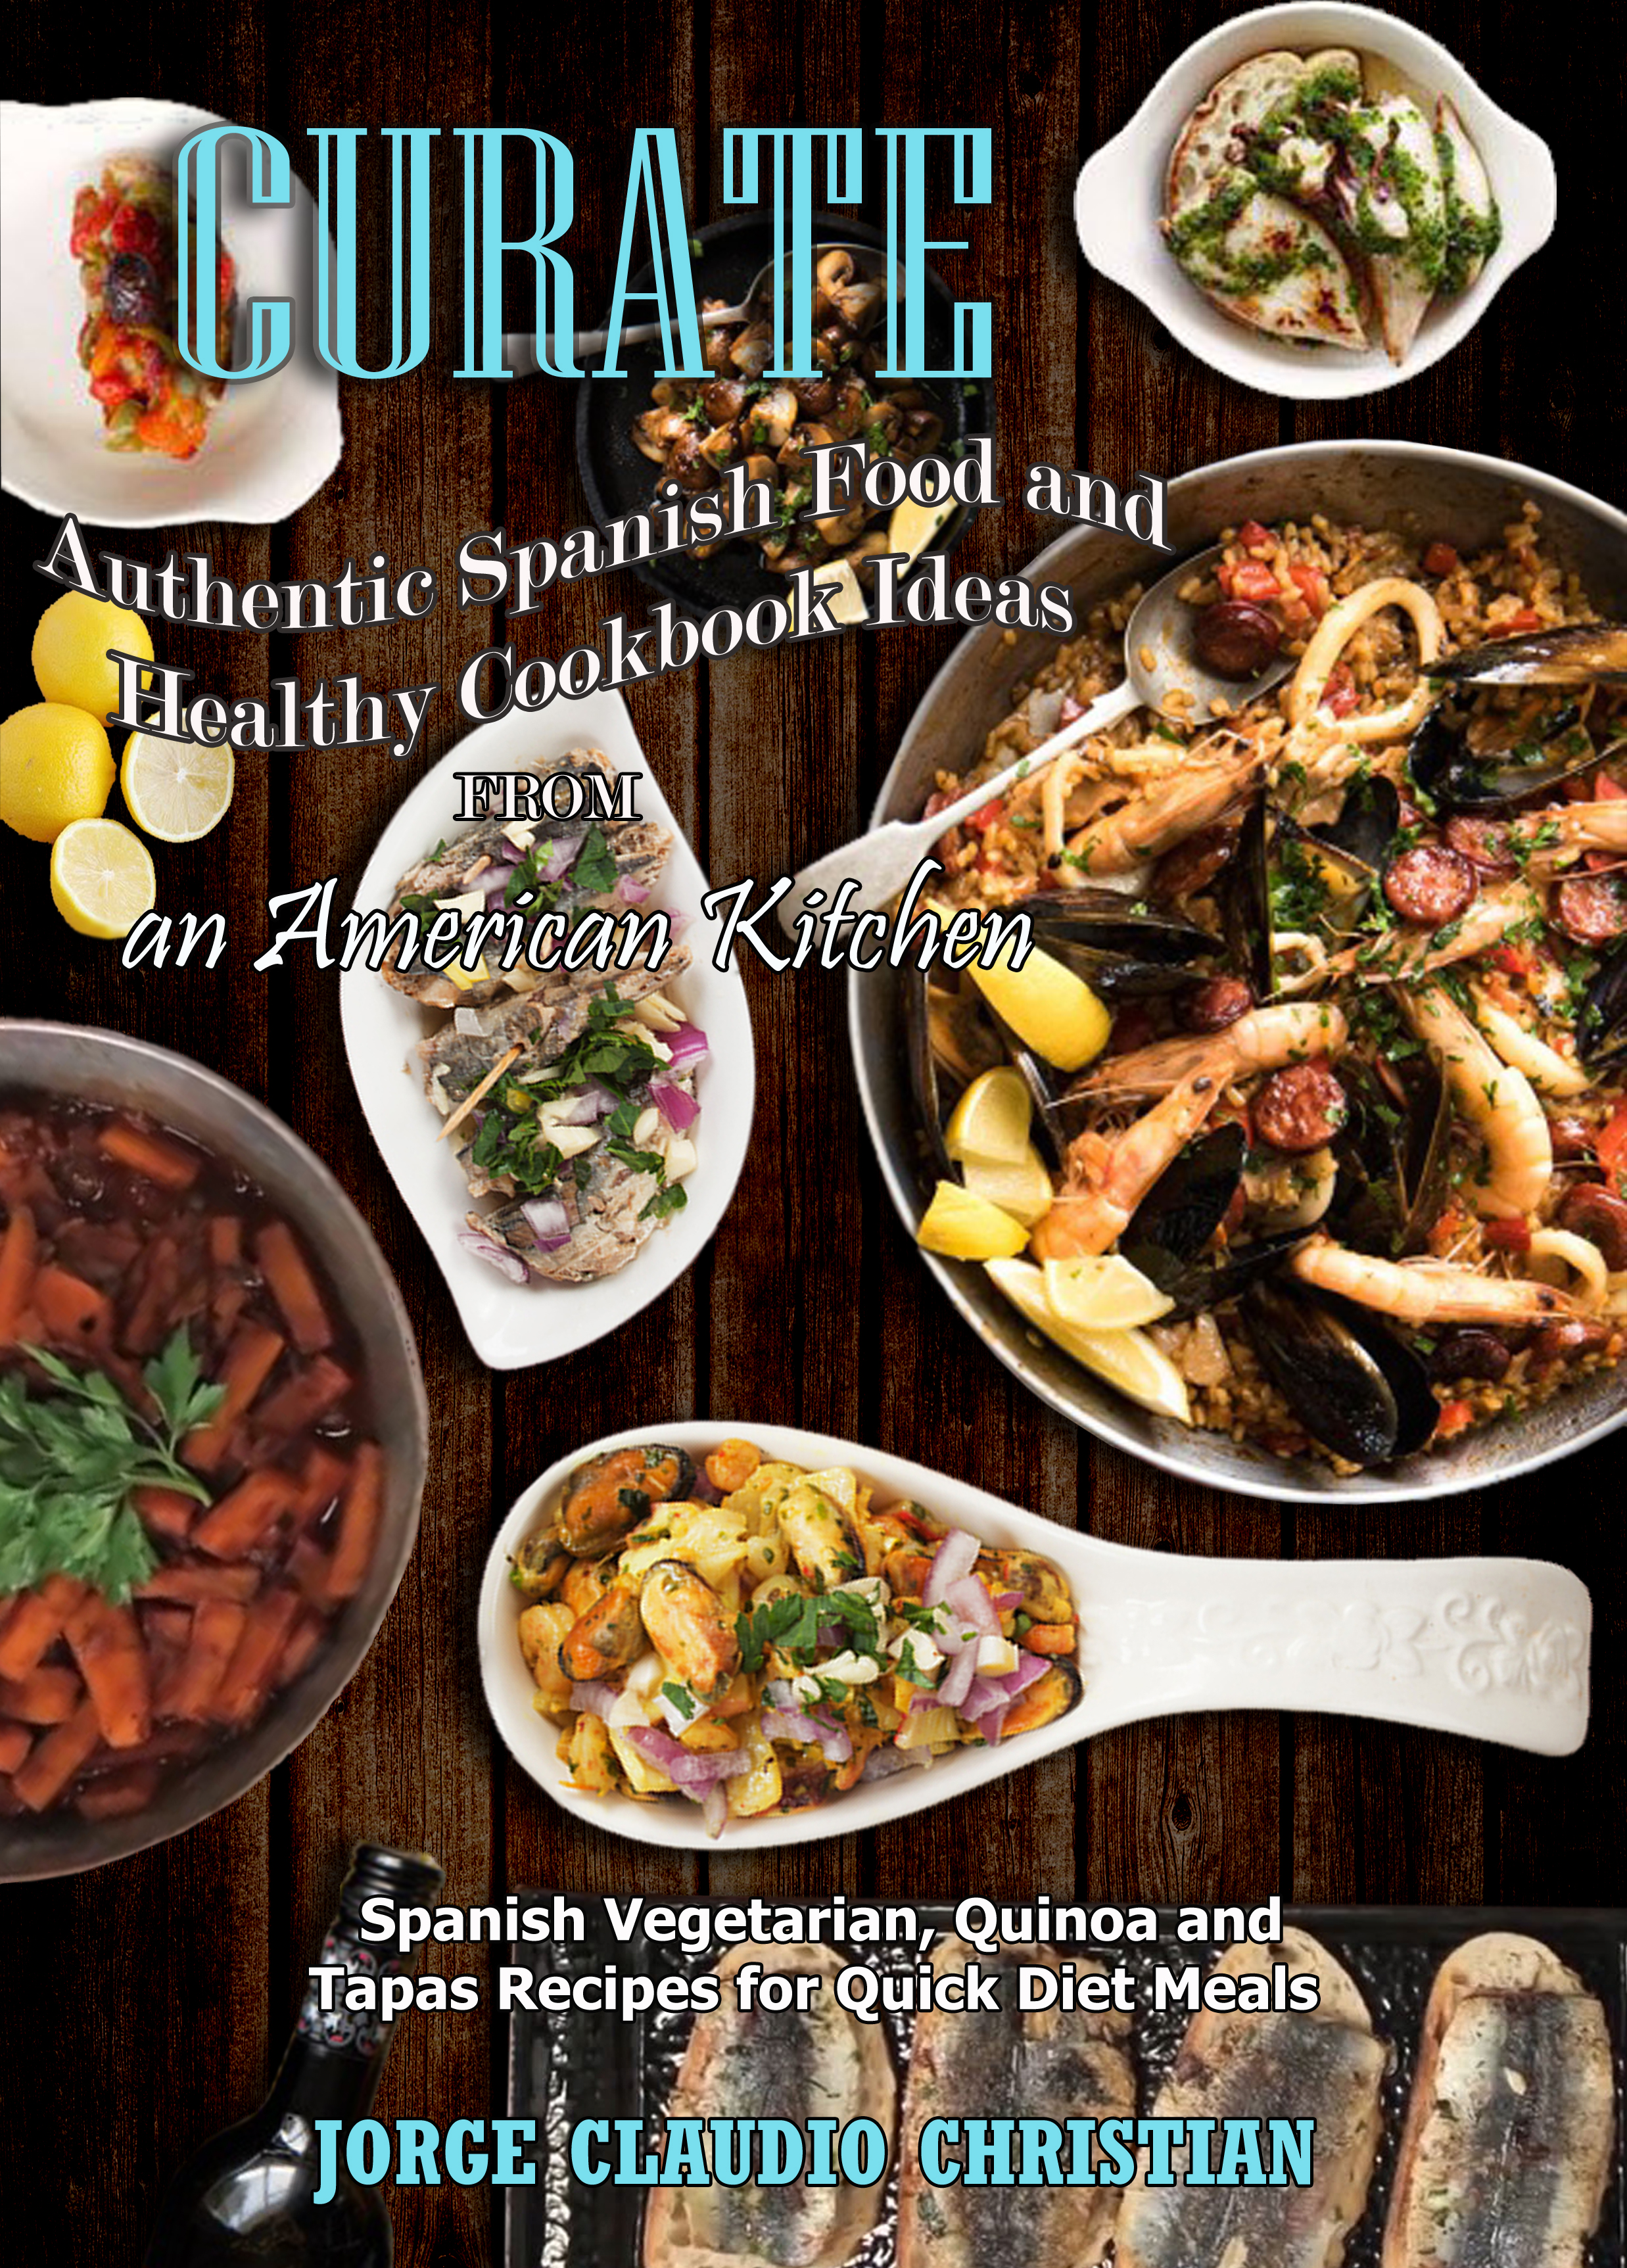 Smashwords crate authentic spanish food and healthy cookbook crate authentic spanish food and healthy cookbook ideas from an american kitchen forumfinder Gallery